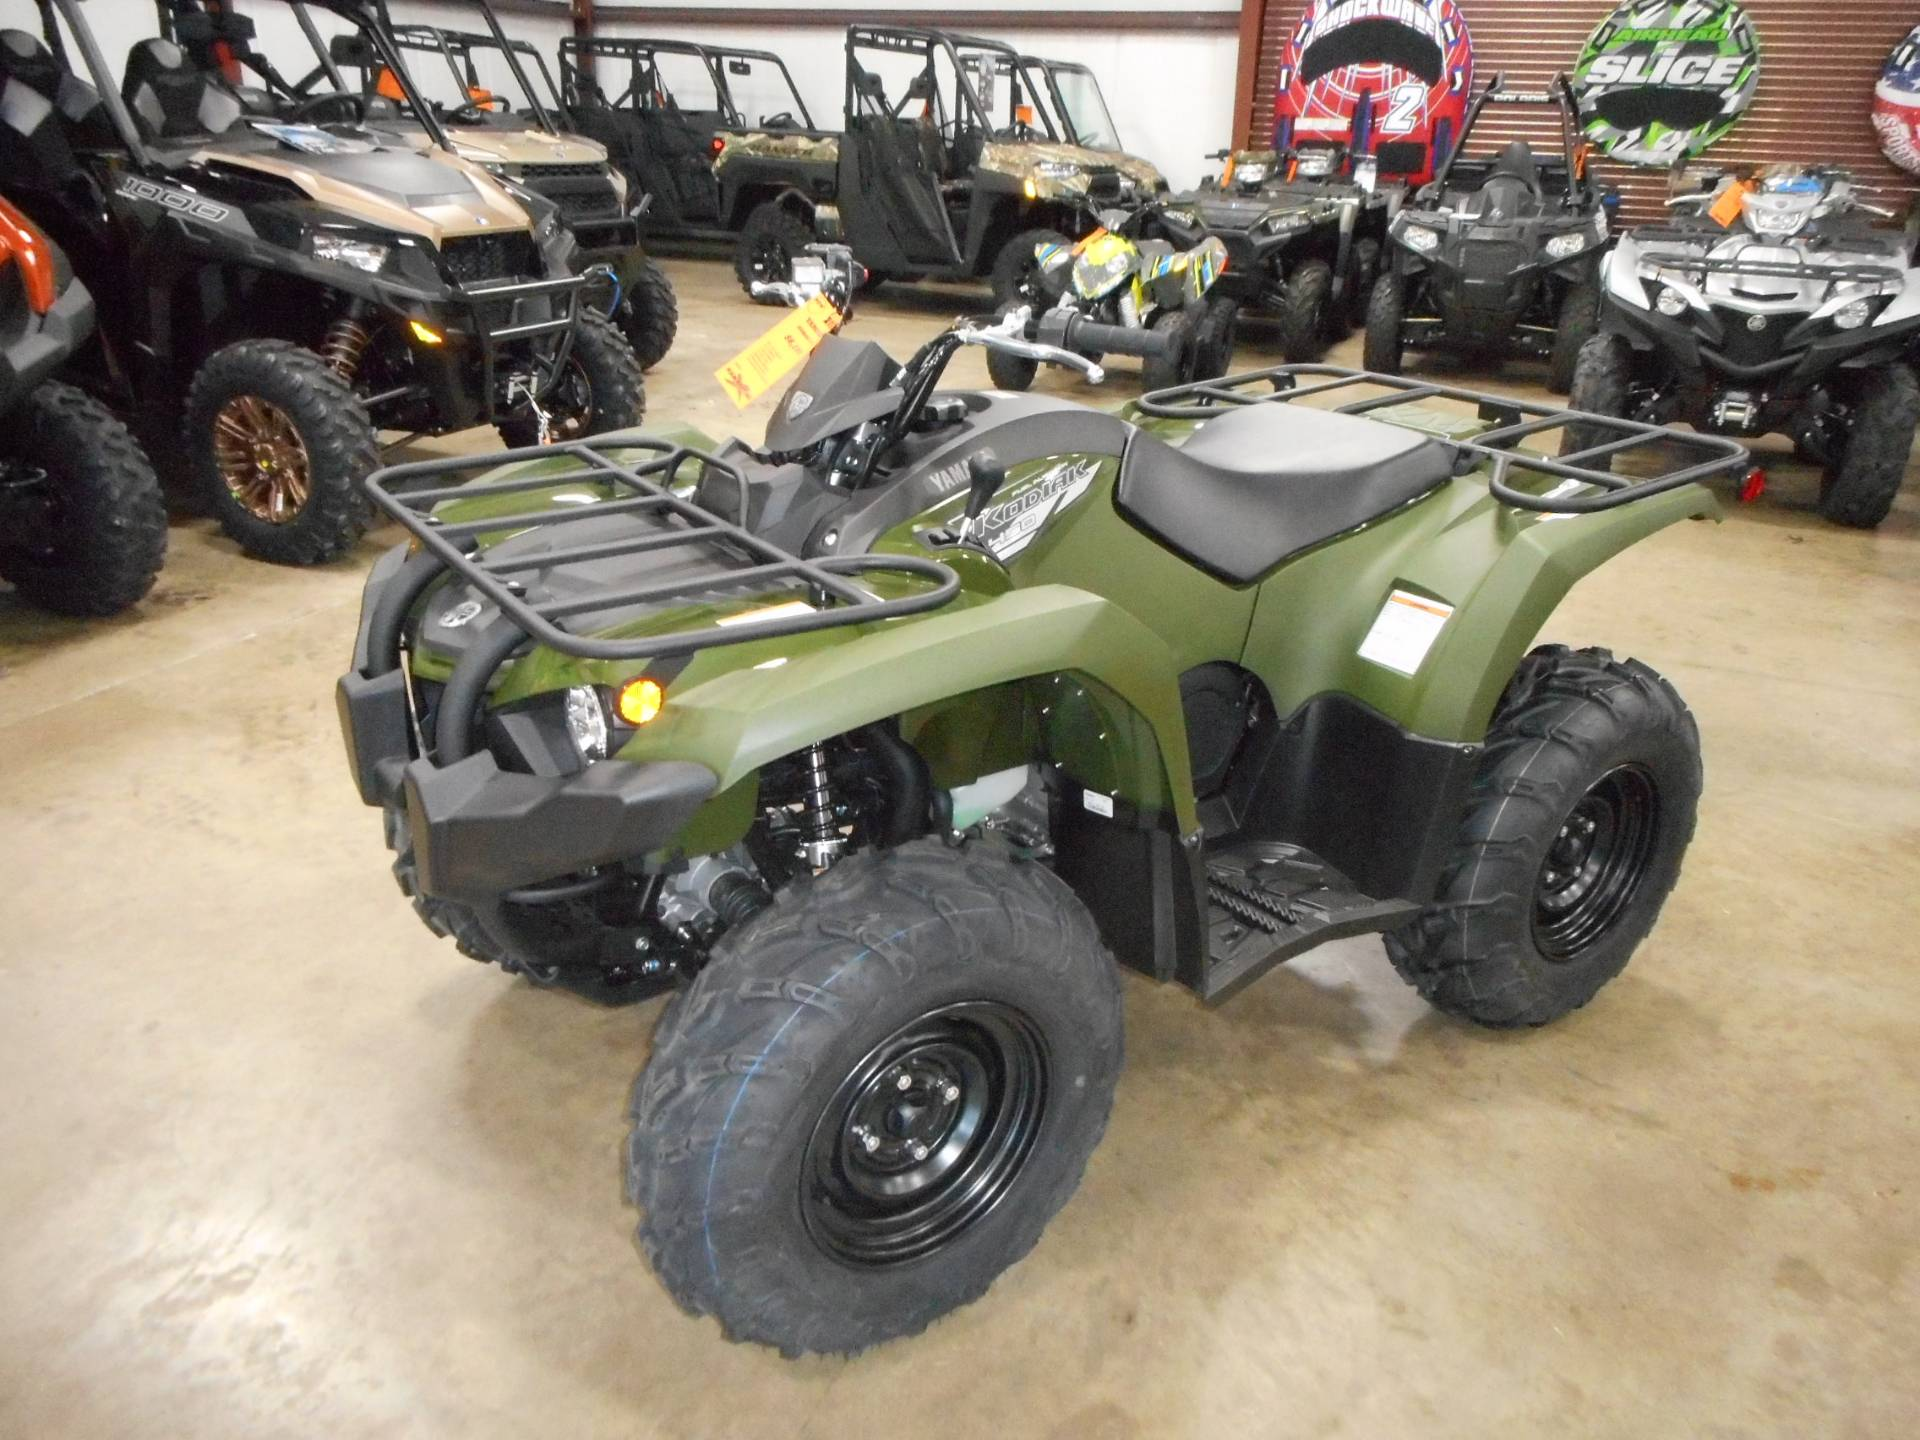 2020 Yamaha Kodiak 450 in Belvidere, Illinois - Photo 3